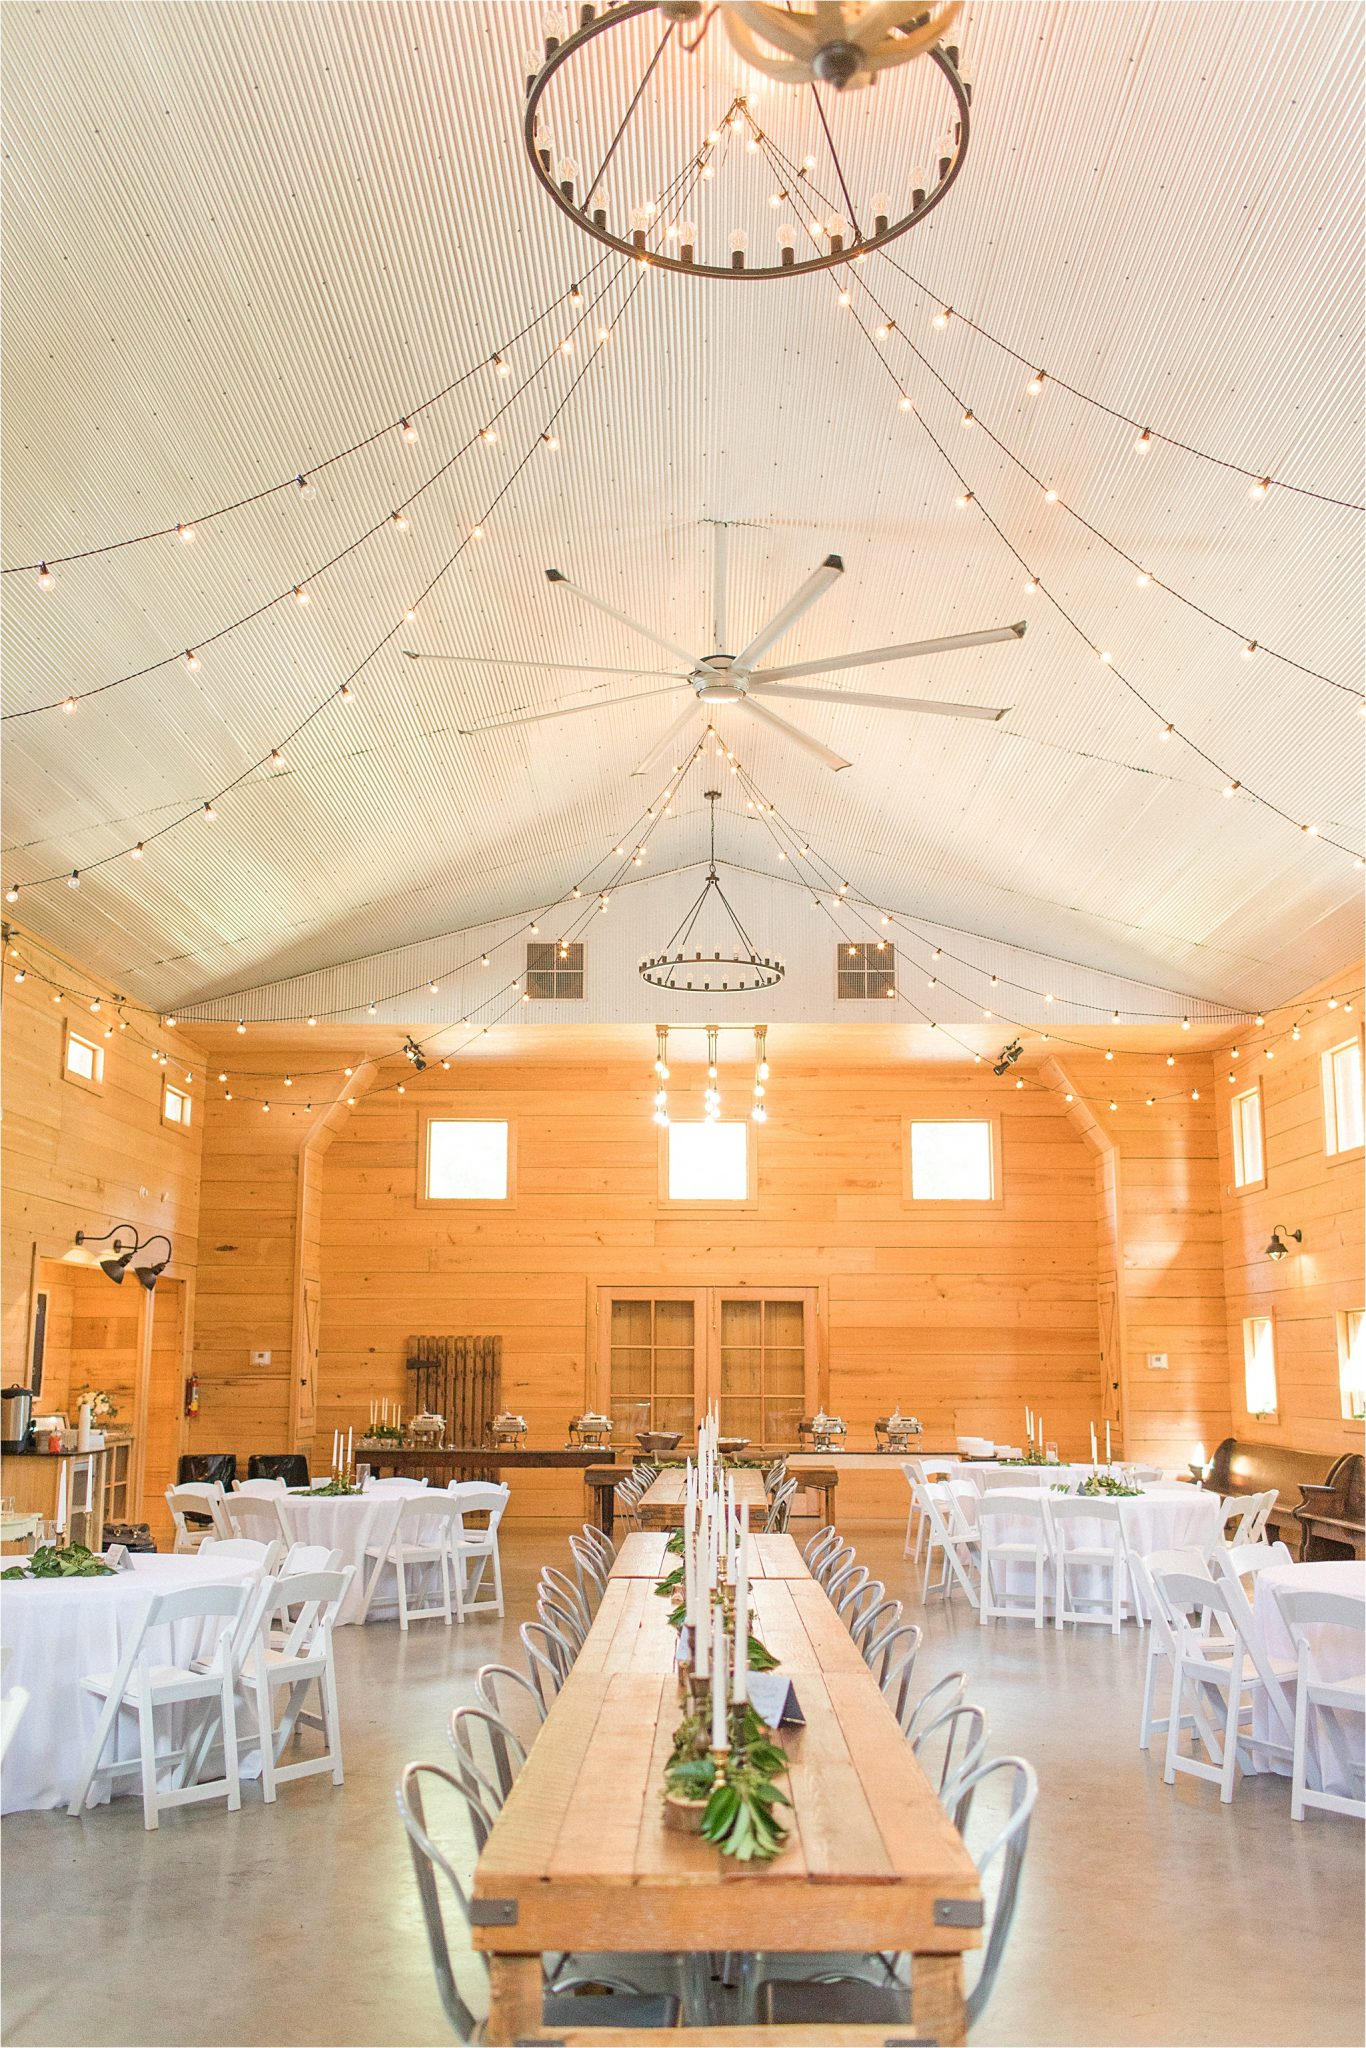 wedding-reception-alabama-venue-barn-farm-tables-metal-chairs-candle-centerpieces-shiplap